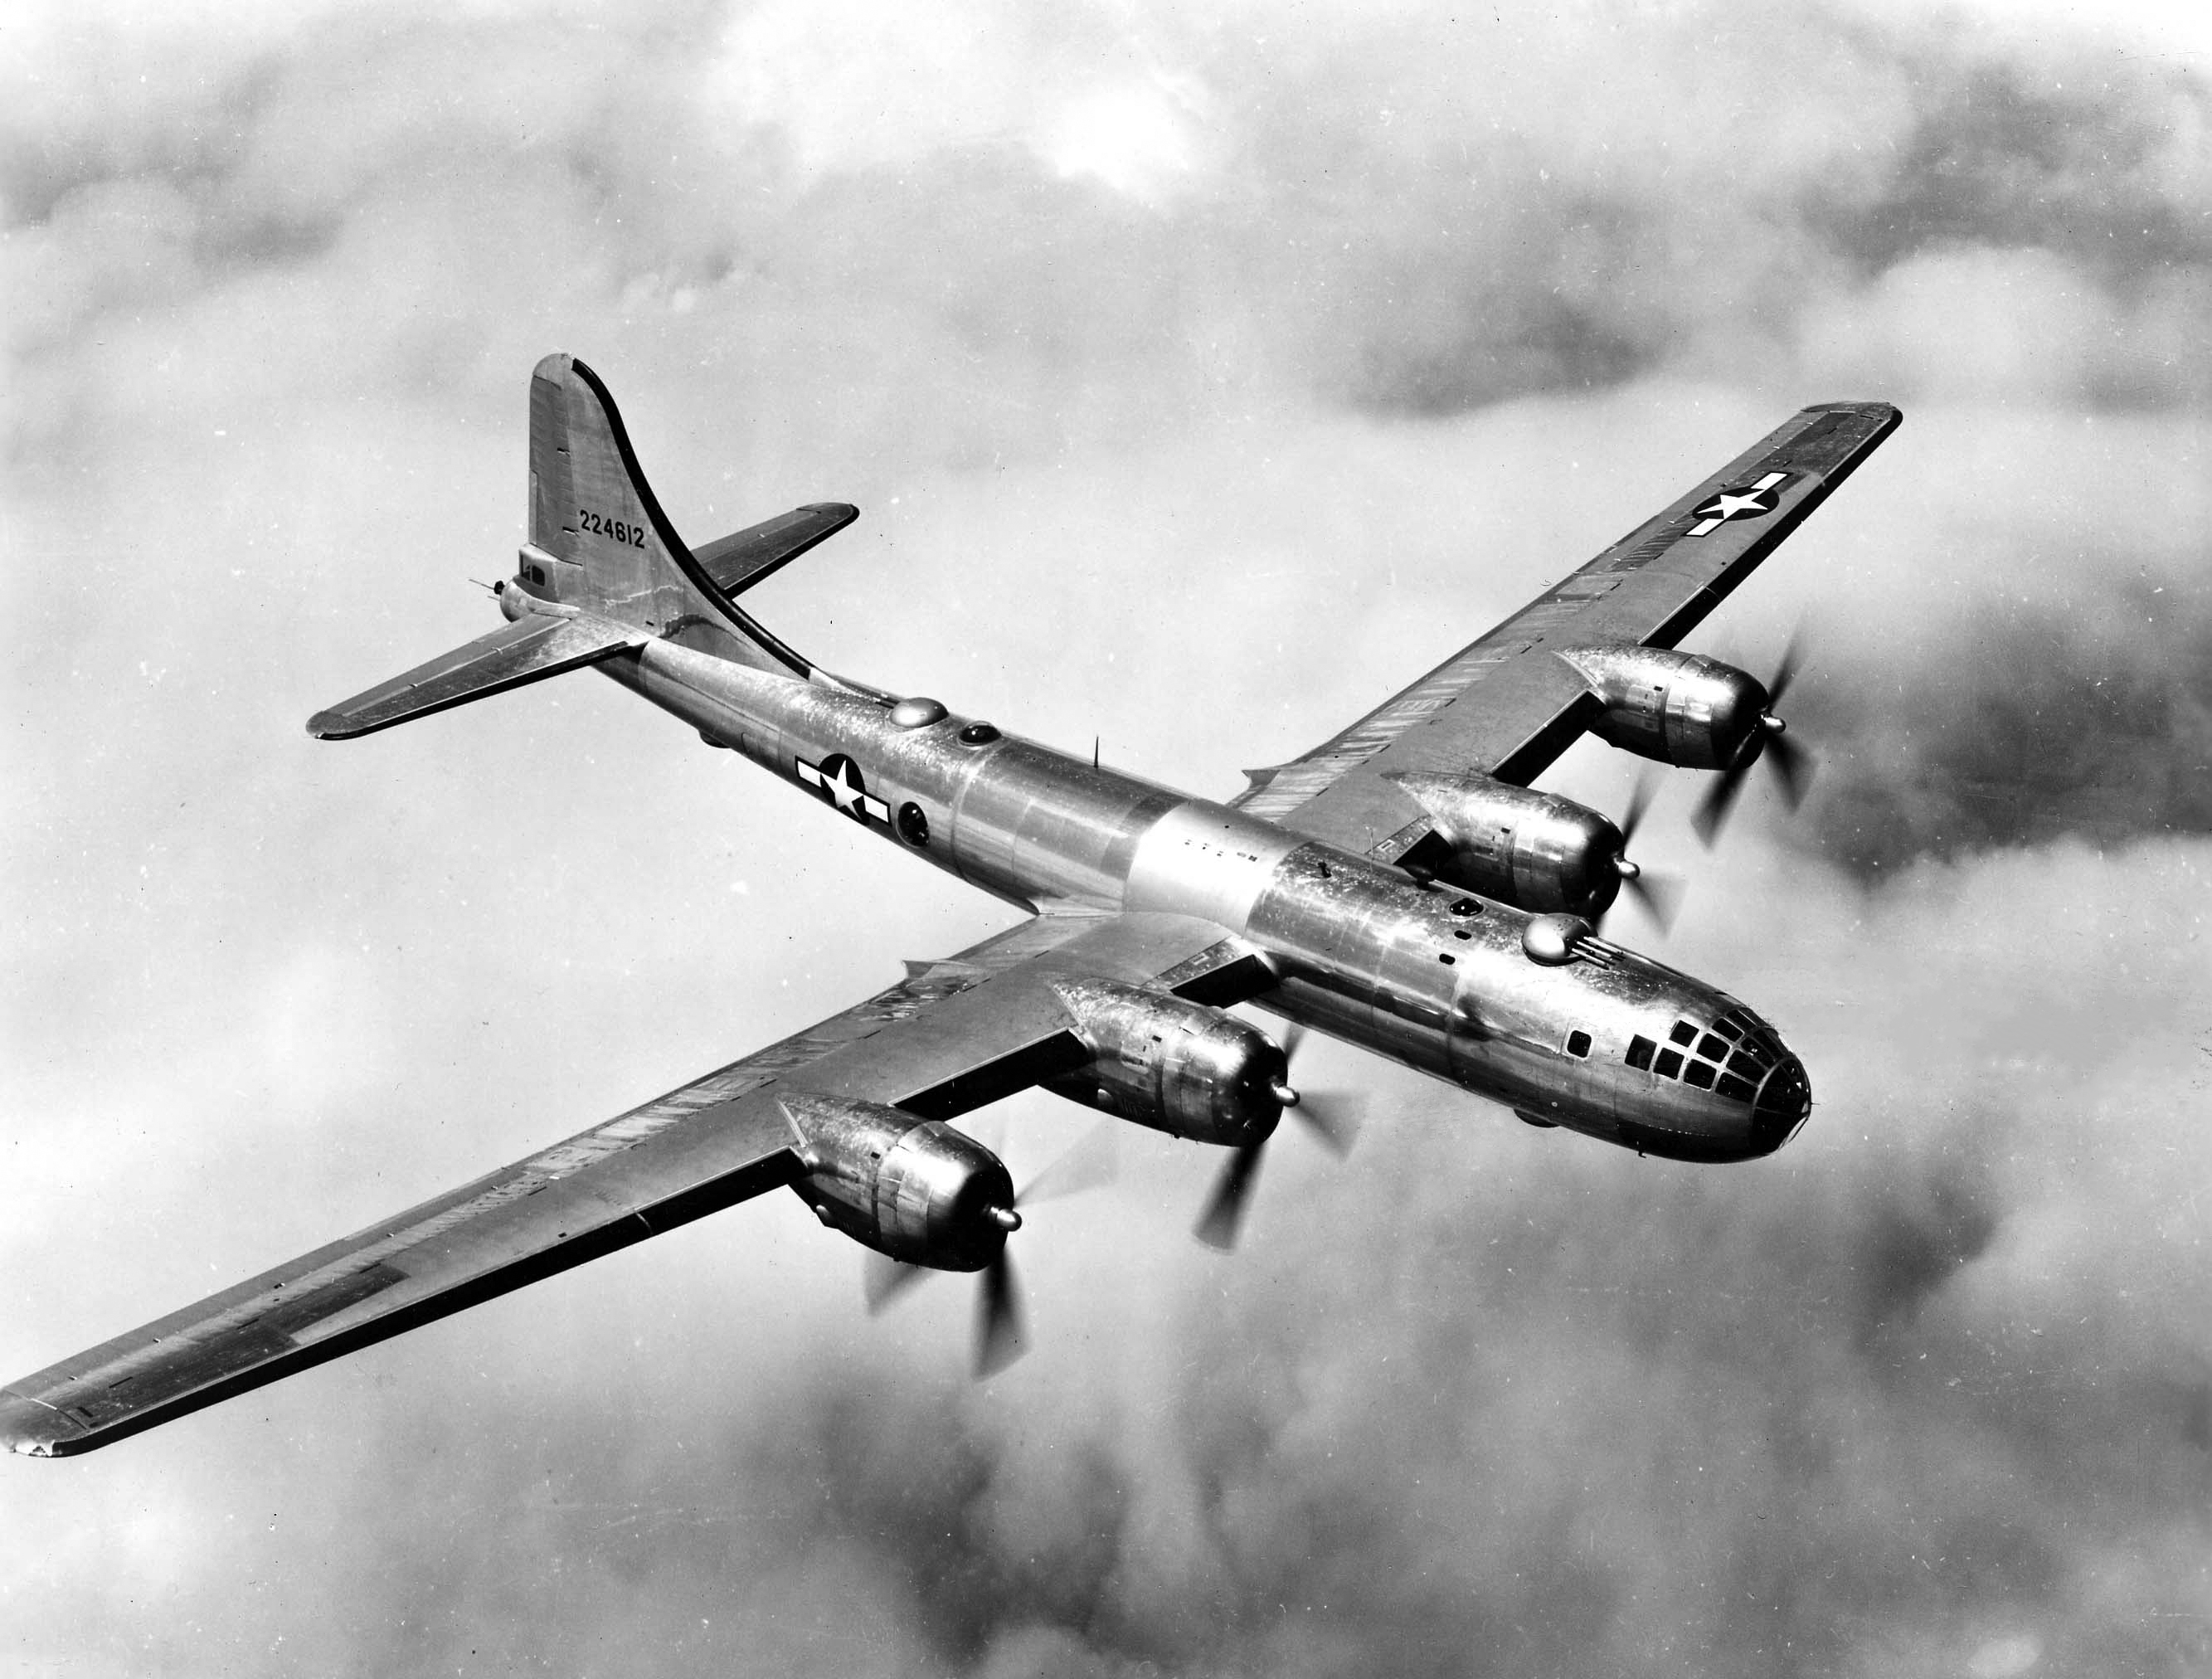 Boeing B-29 Superfortress in flight